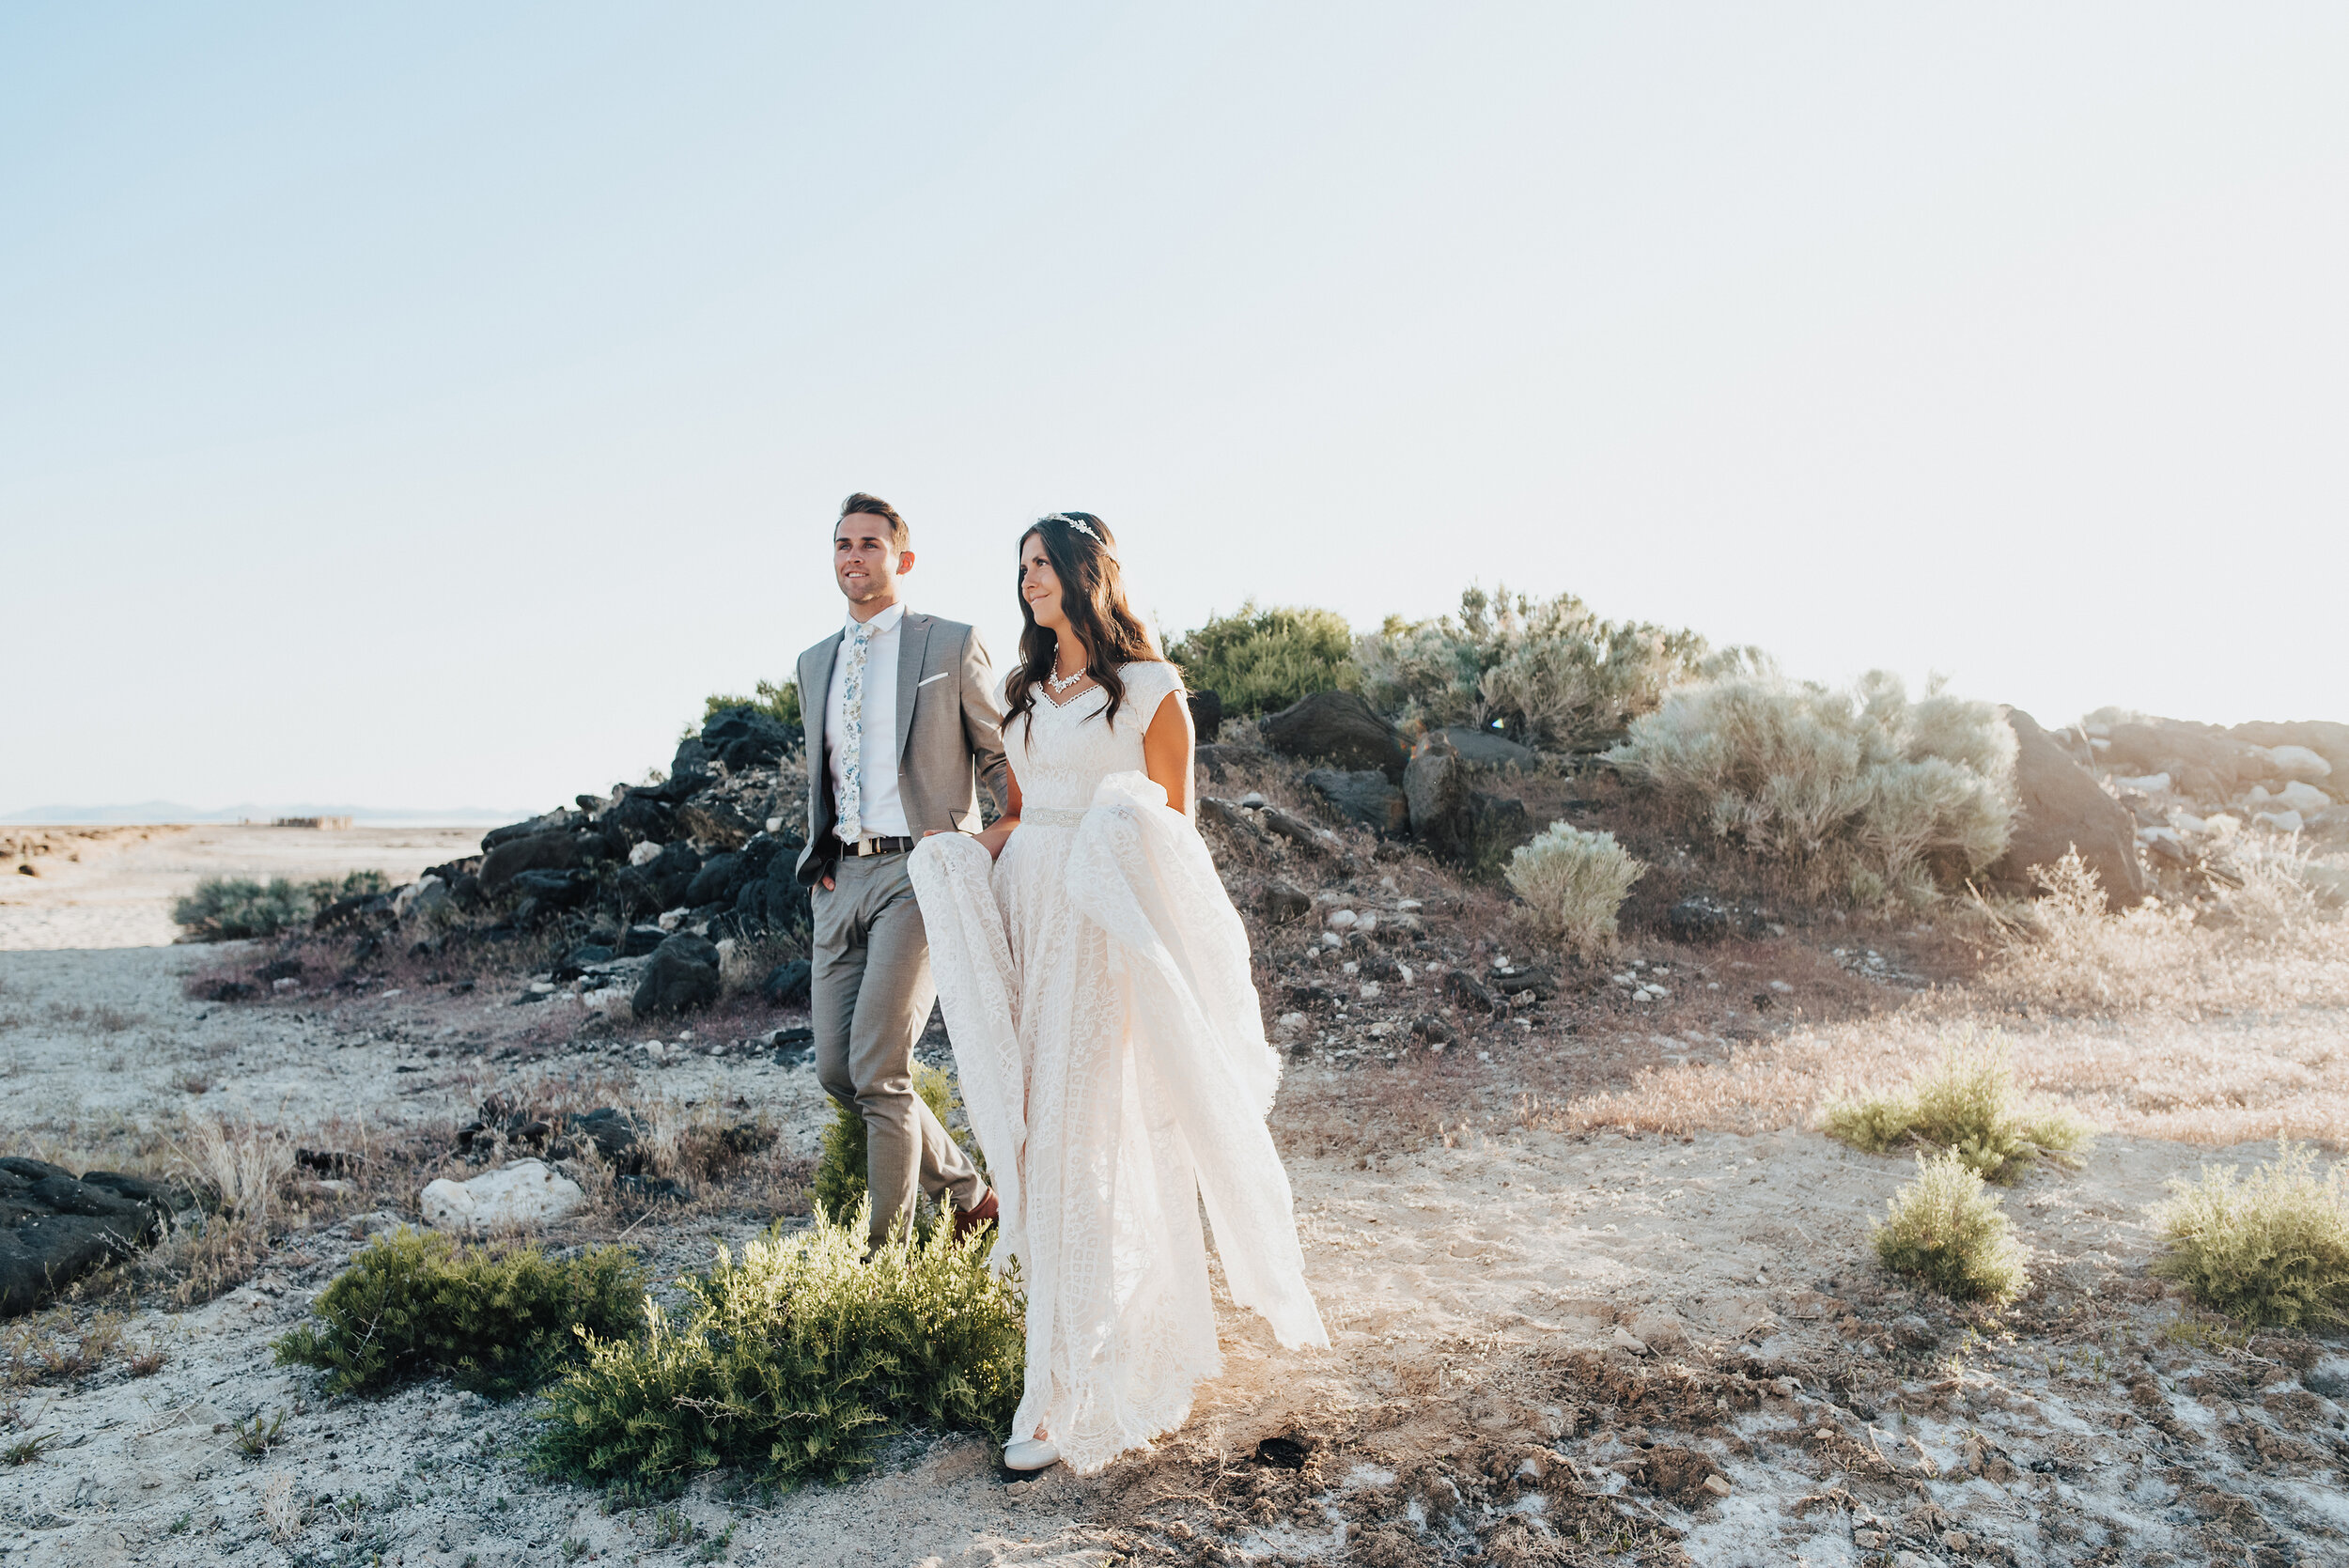 Walking down the rocky shore of the Great Salt Lake during a magical sunset formal session with this stunning bride and groom. Her lace wedding gown captured the lighting of the sunset in all the best ways and his grey suit was was made for this location. #spiraljetty #GreatSaltLake #formalsession #SaltFlats #sunsetphotosession #NorthernUtah #weddingphotographer #formalphotographer #brideandgroom #outdoorformals #weddingformalphotography